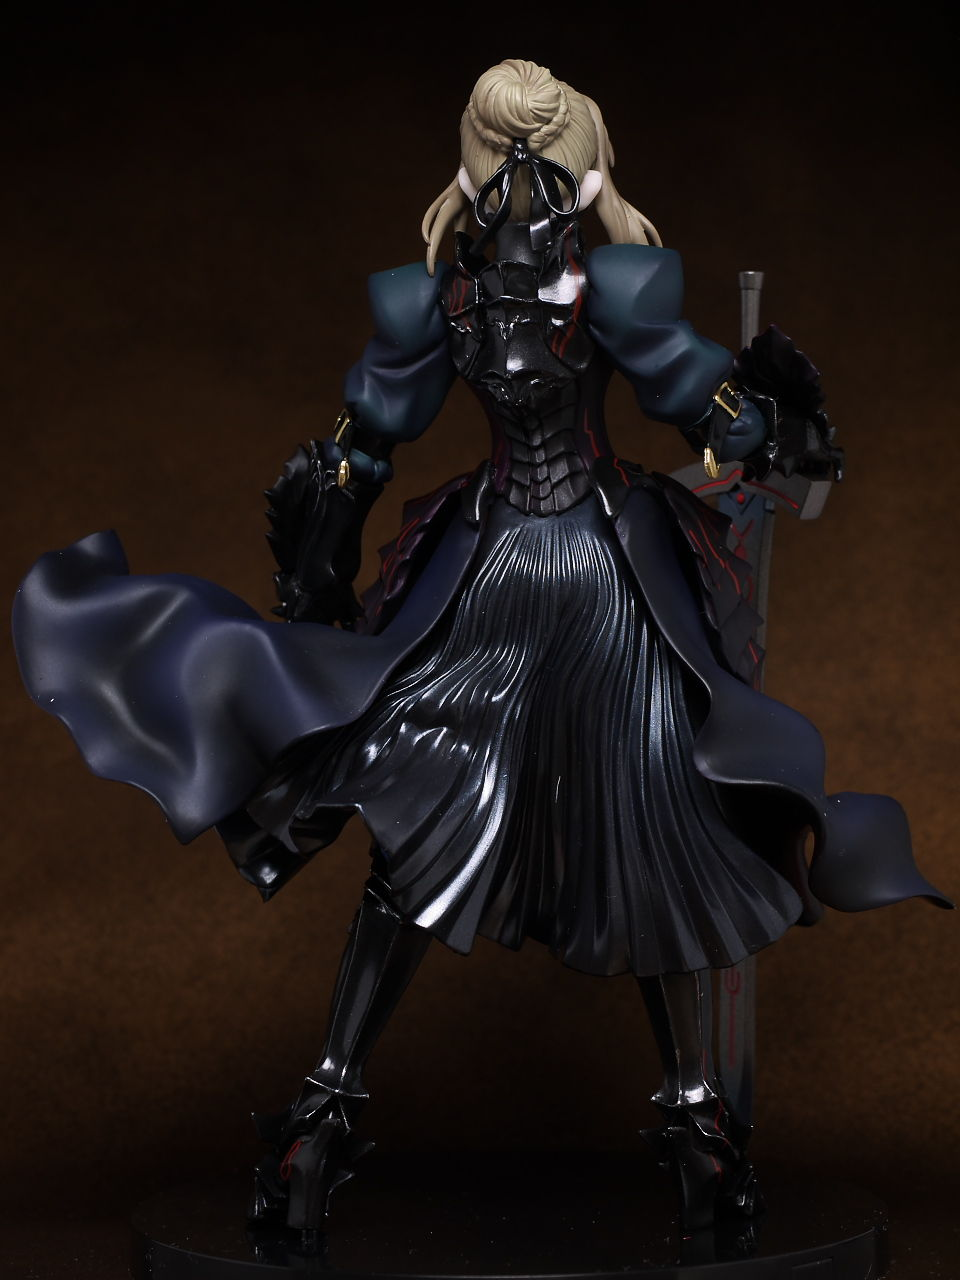 Saber Alter 1/8 Movic A/B - Click Image to Close